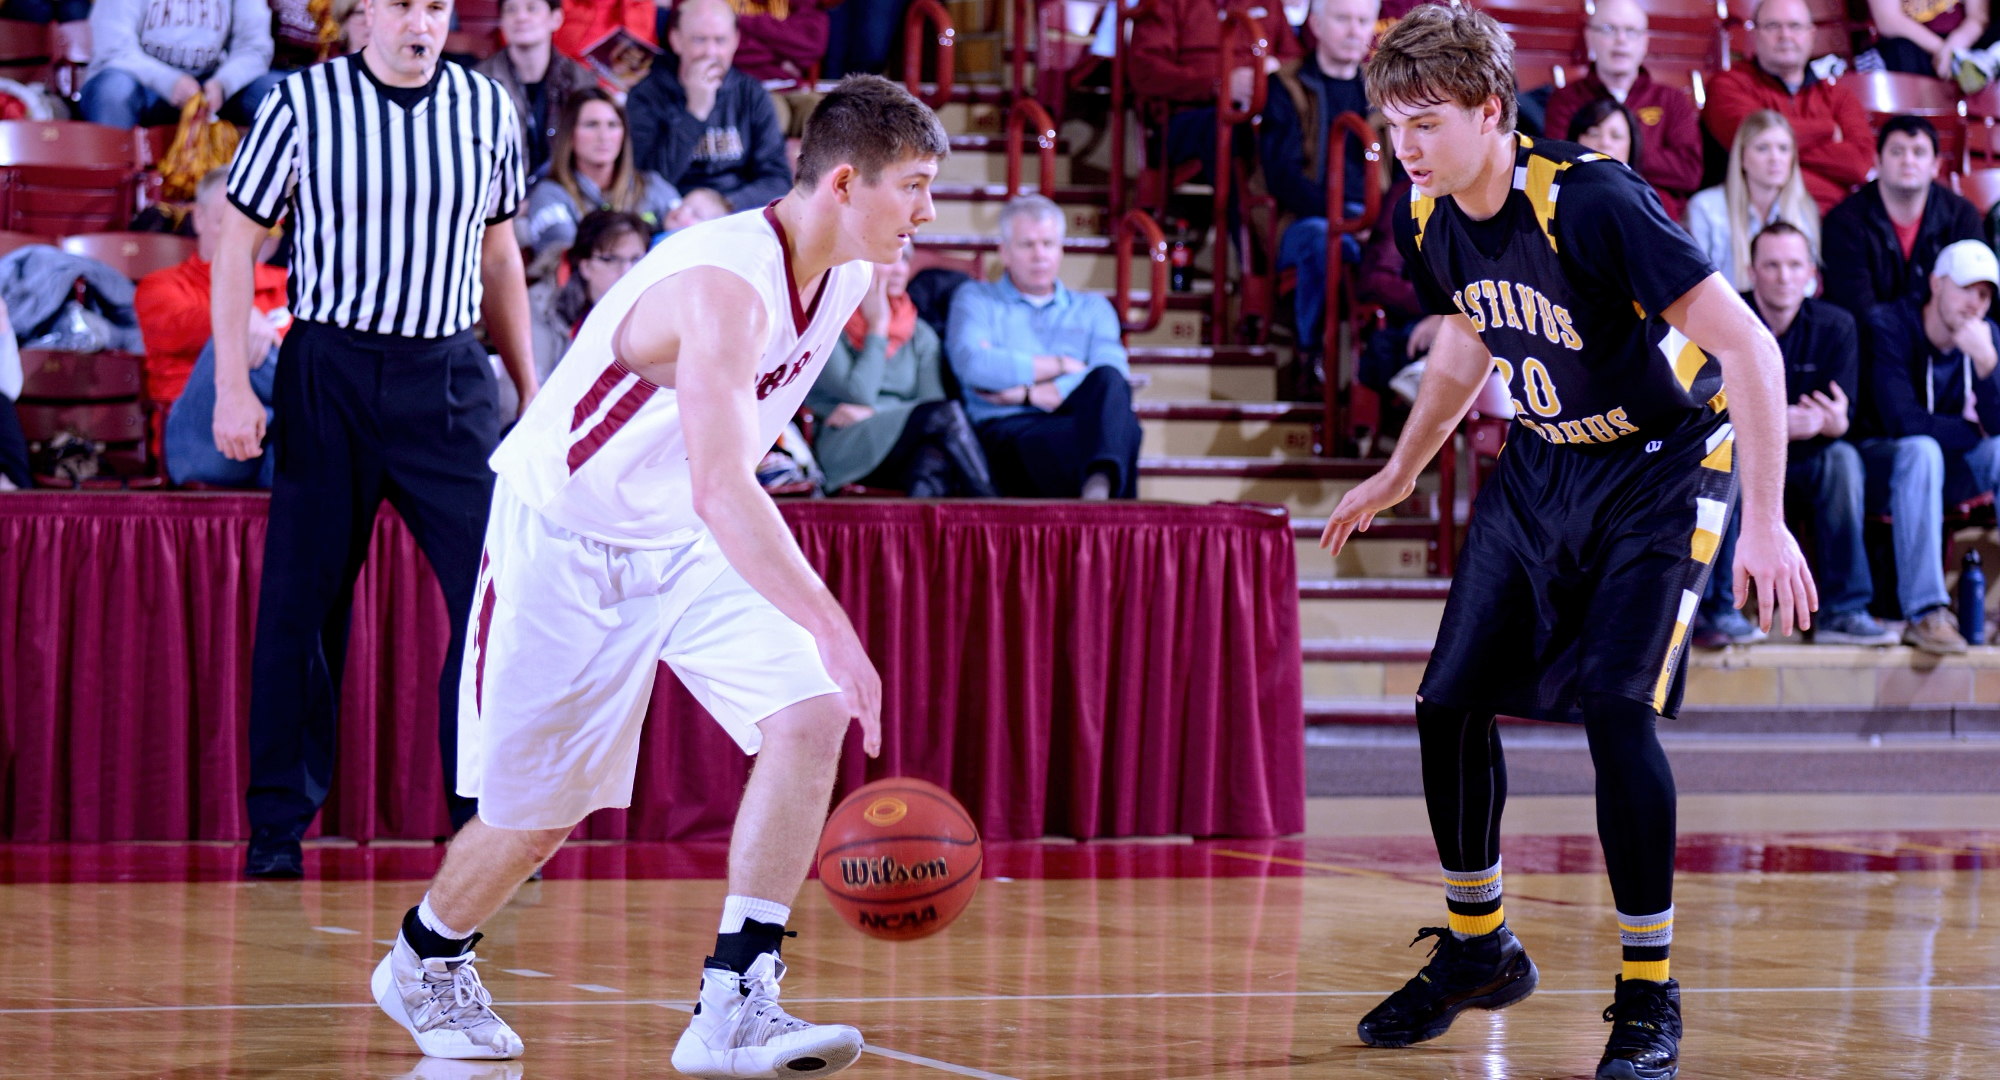 Senior Dylan Alderman had a season-high 22 points in the Cobbers' conference opener at Gustavus.